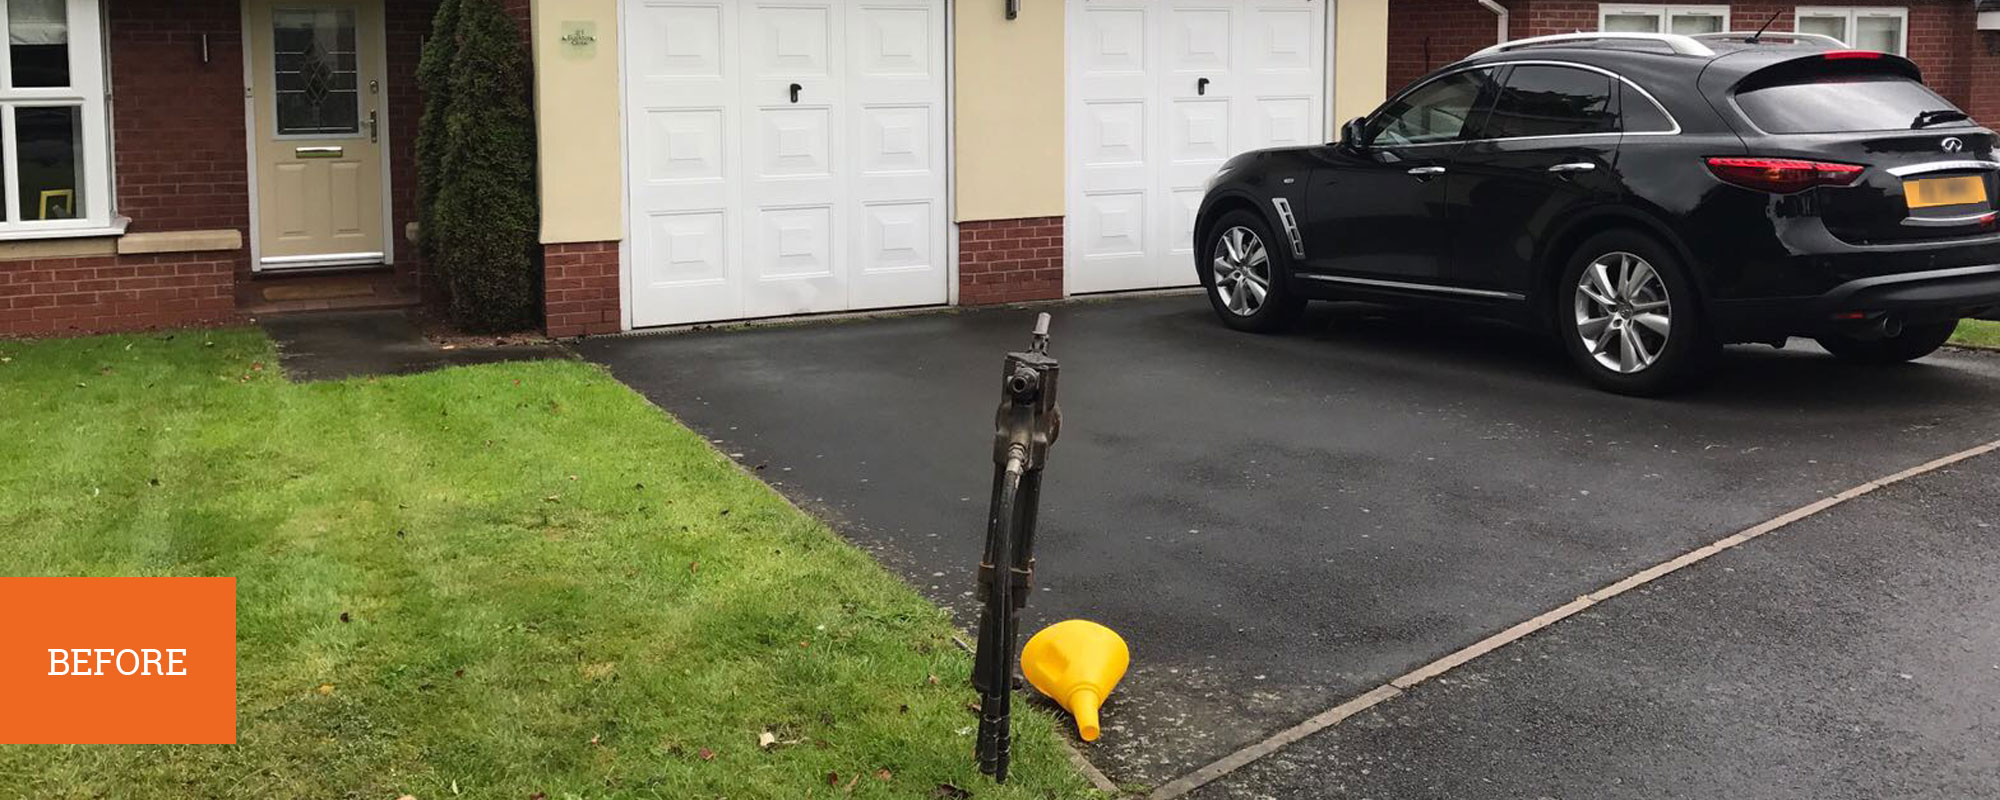 PageLines-sutton-coldfield-driveway-before.jpg